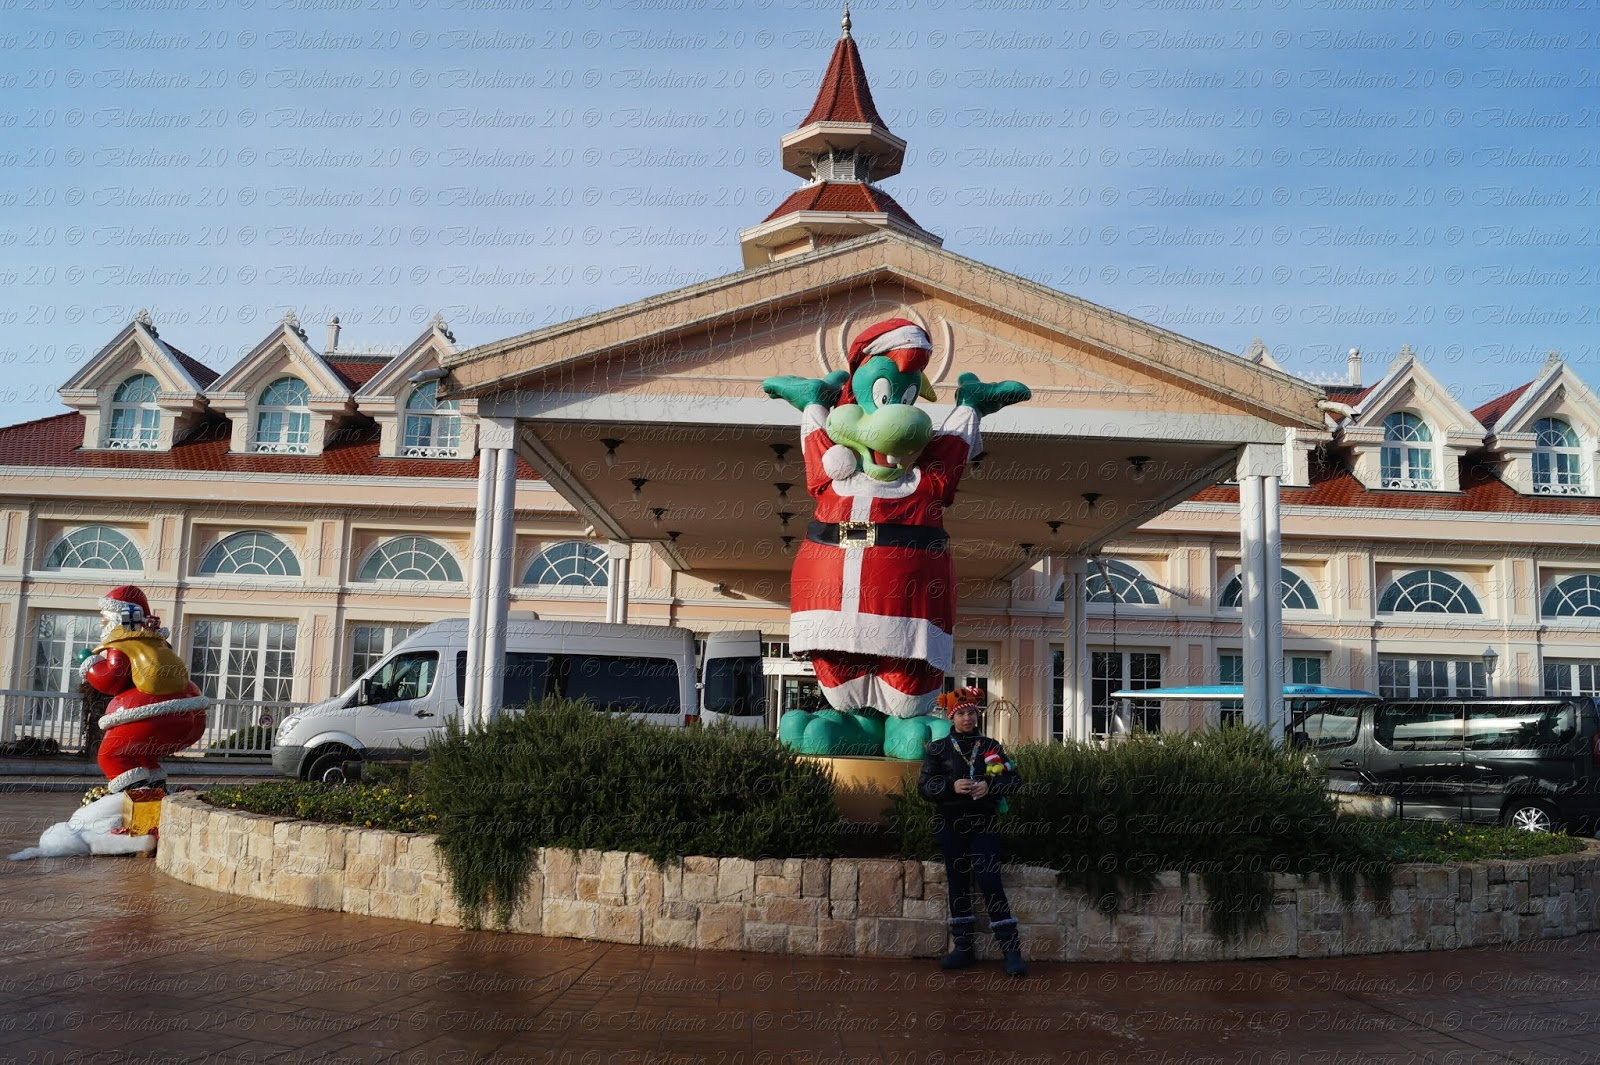 Soggiorno Gardaland | Natale A Gardaland Gardaland Magic Winter 2018